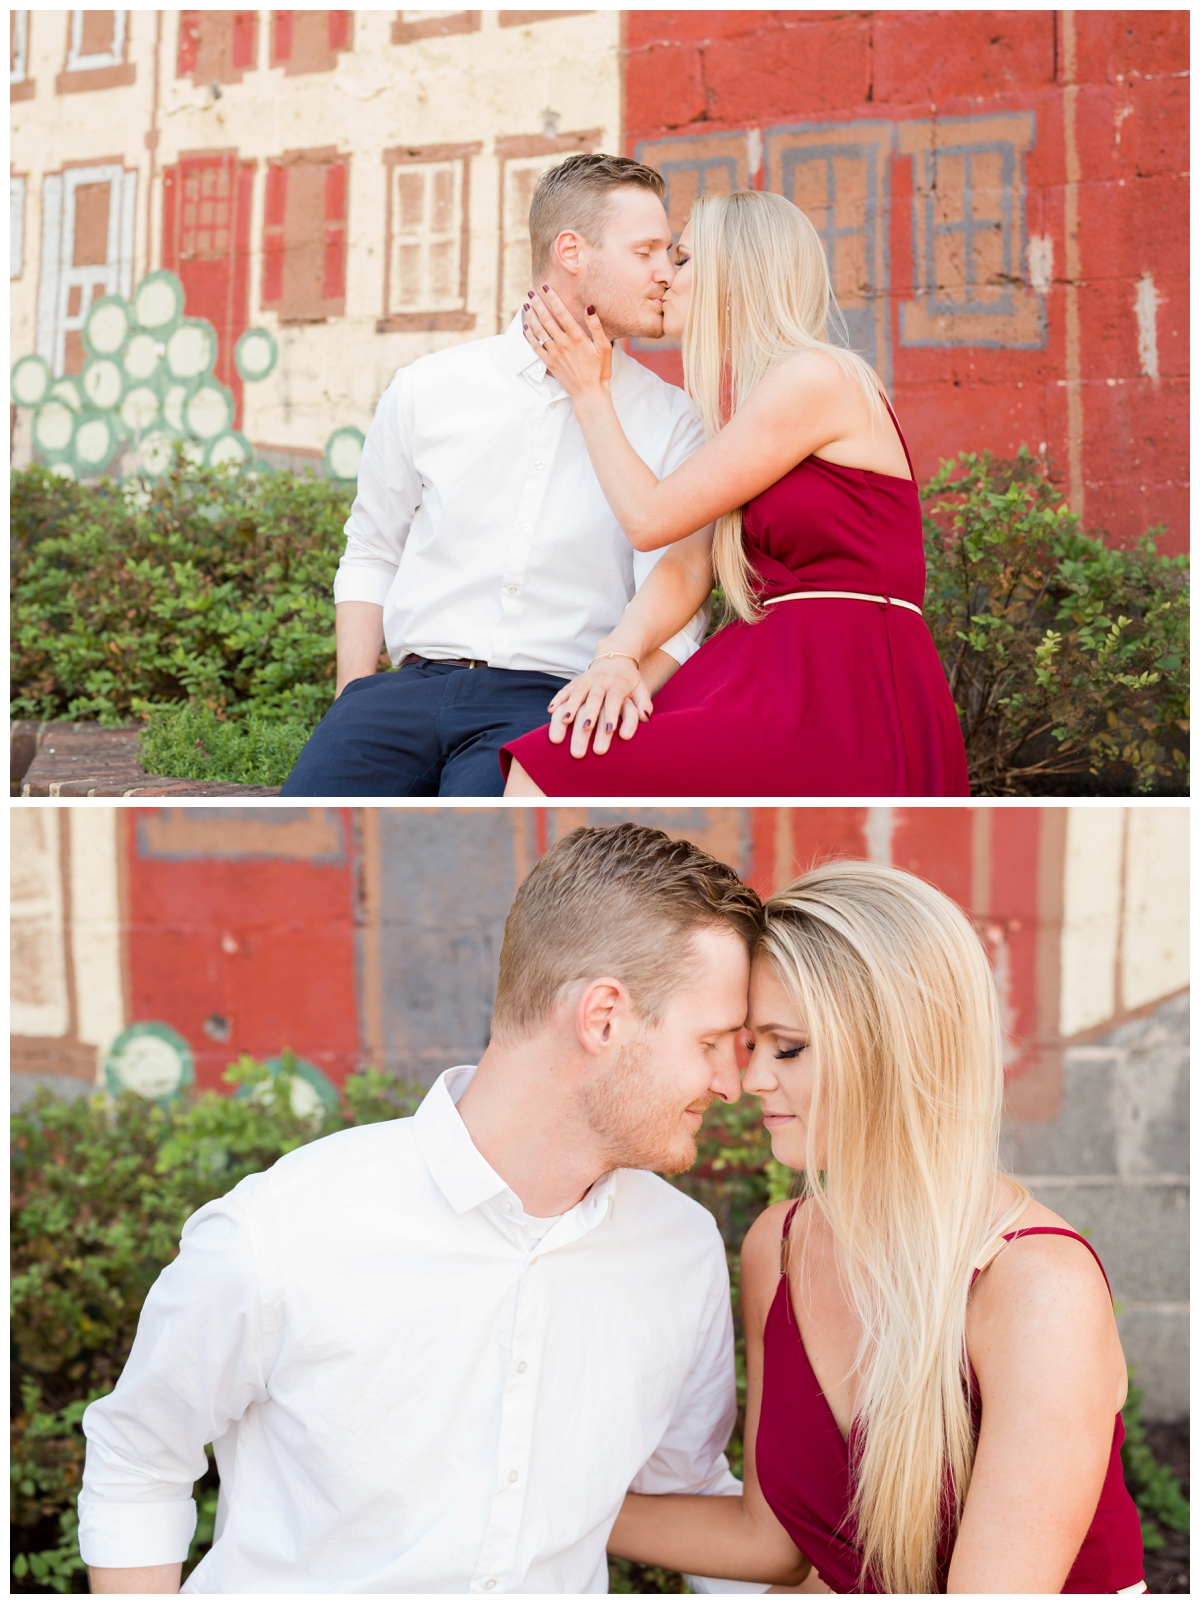 Ellicott City Engagement Photo by train bridge. Old Ellicott City. Sitting by the mural.